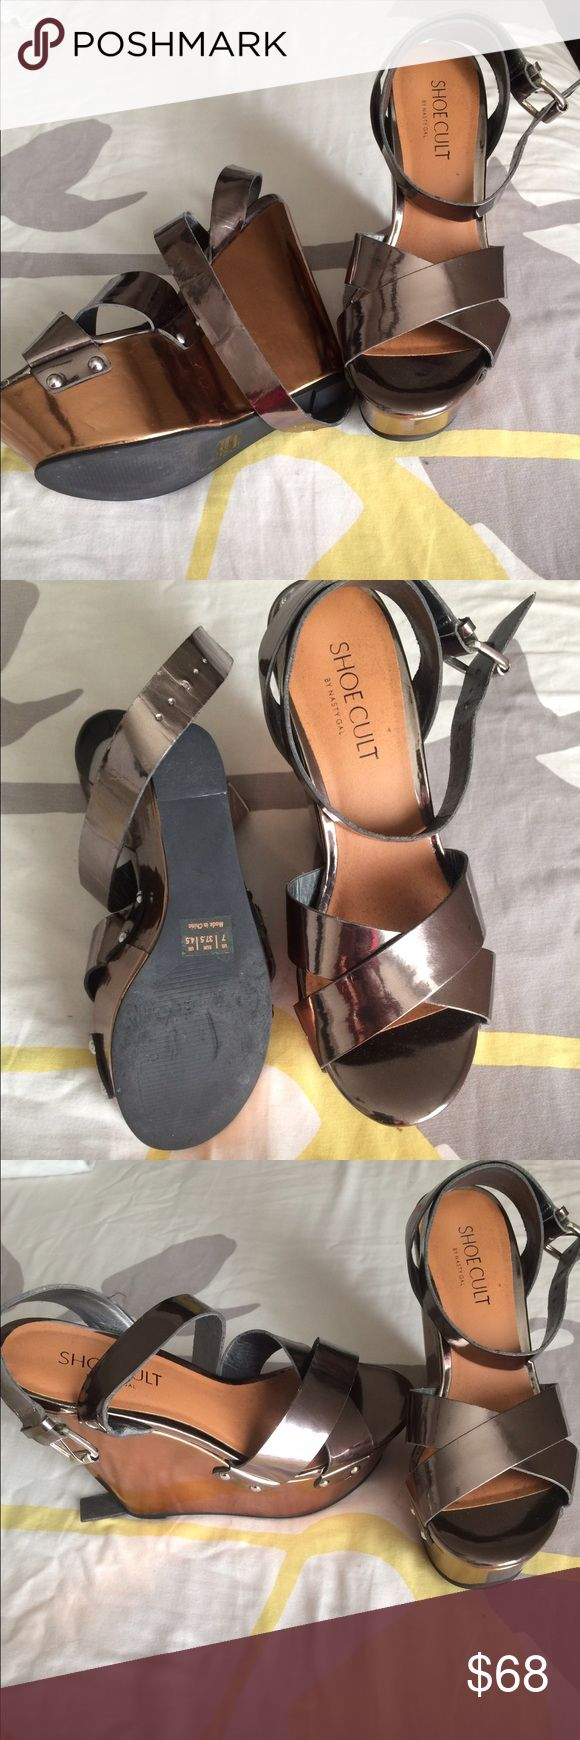 Shoe cult by nasty gal wedge pewter sandals Shoe cult by nasty gal wedge pewter sandals .. brand new only wore ONCE Nasty Gal Shoes Sandals